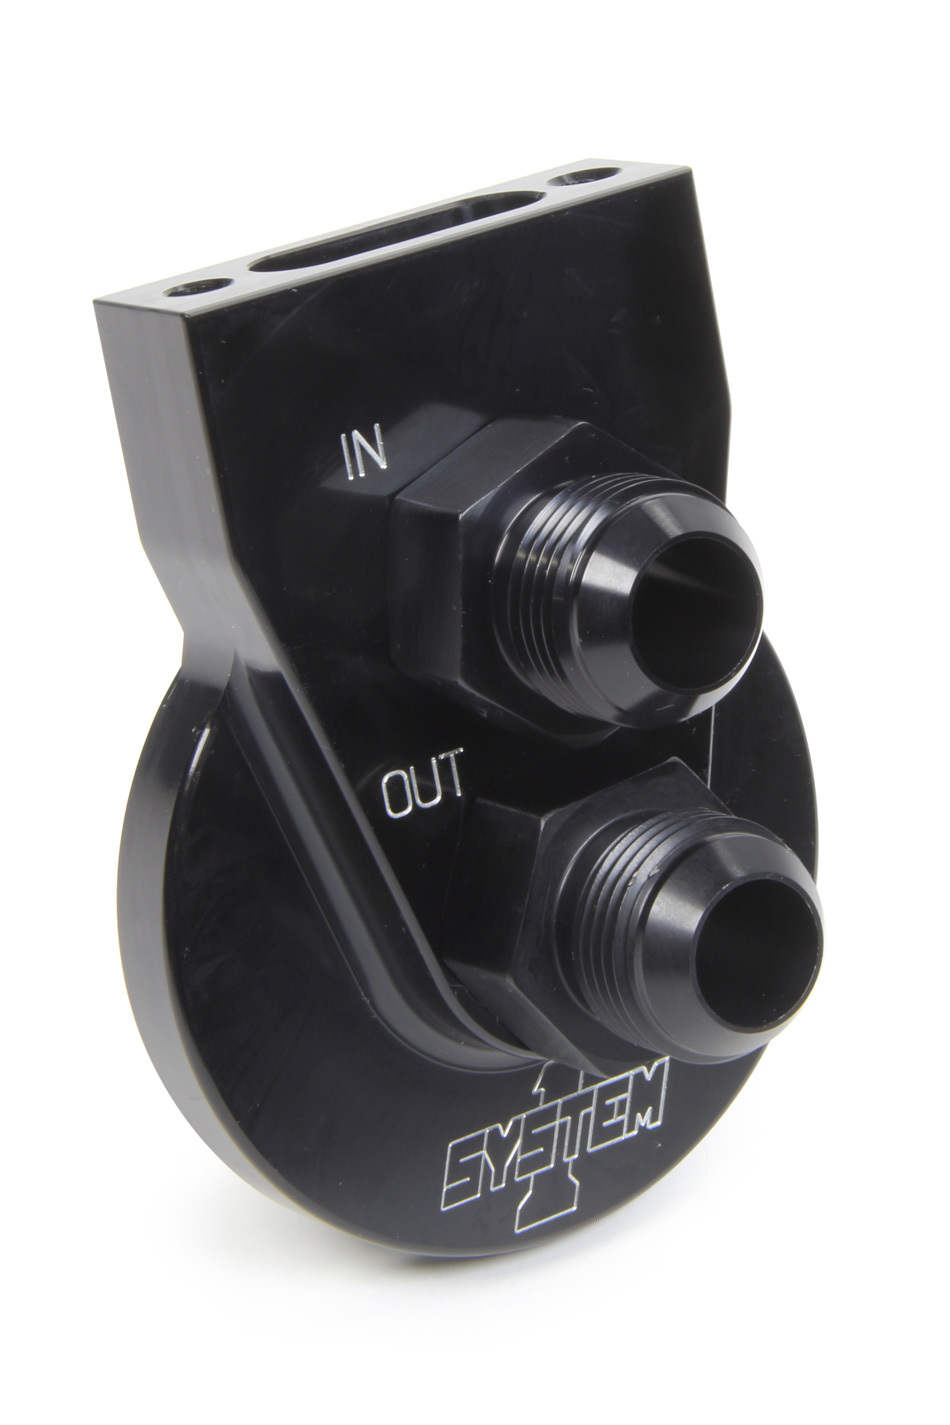 System One Remote Filter Mount #12 w/Flat Mnt Surface